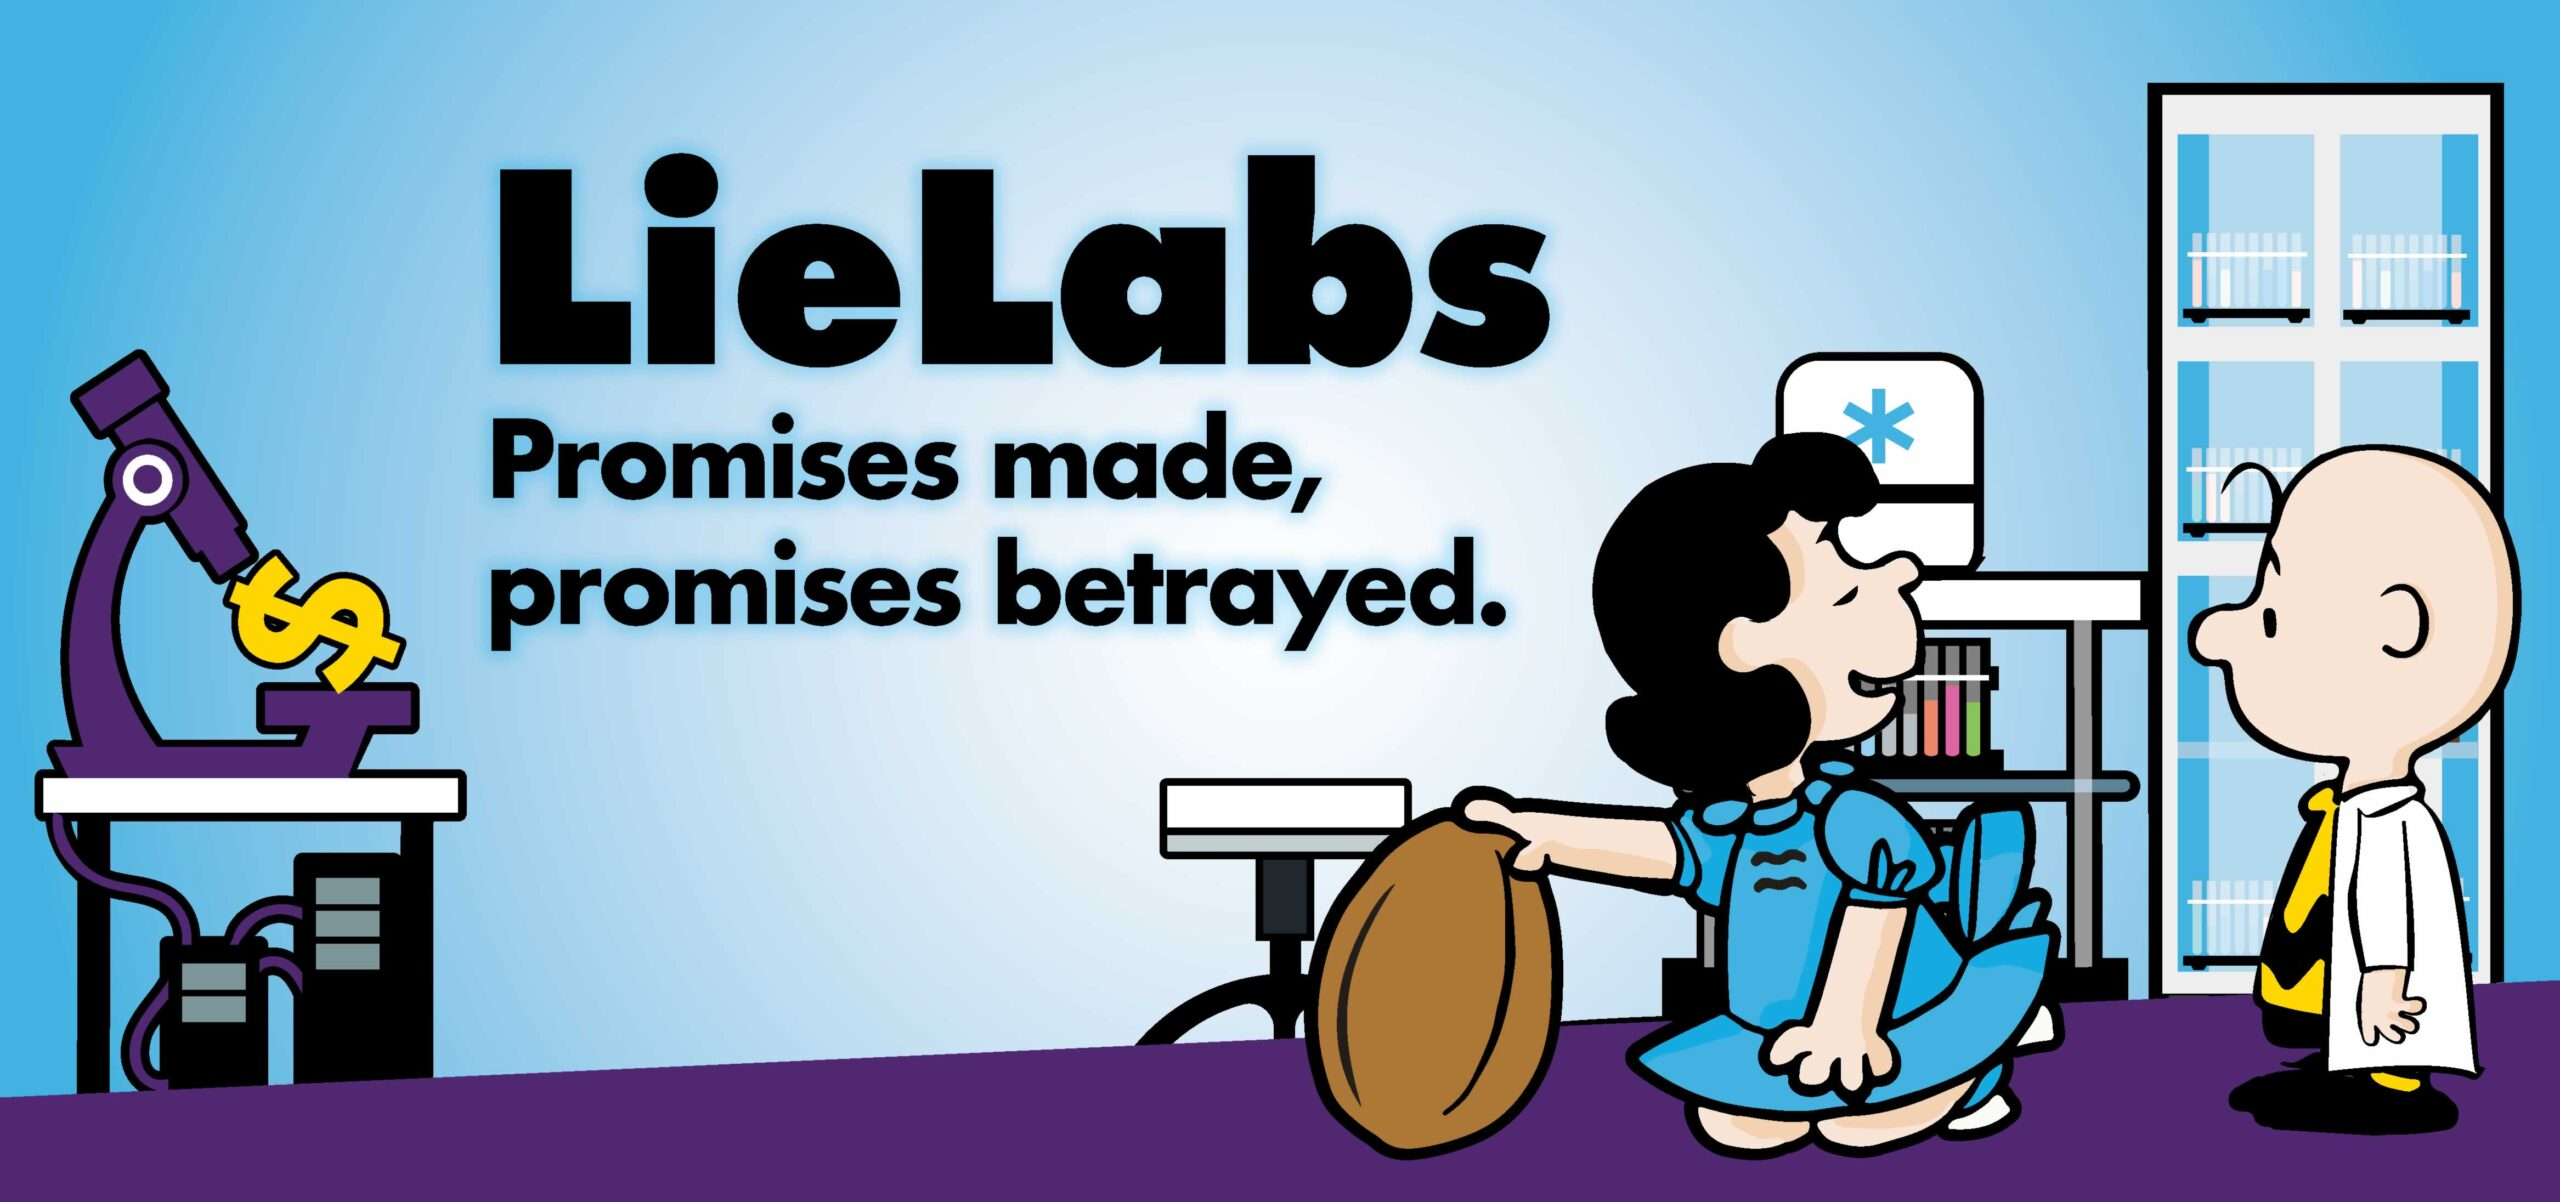 Lie Labs Promises made, promises betrayed